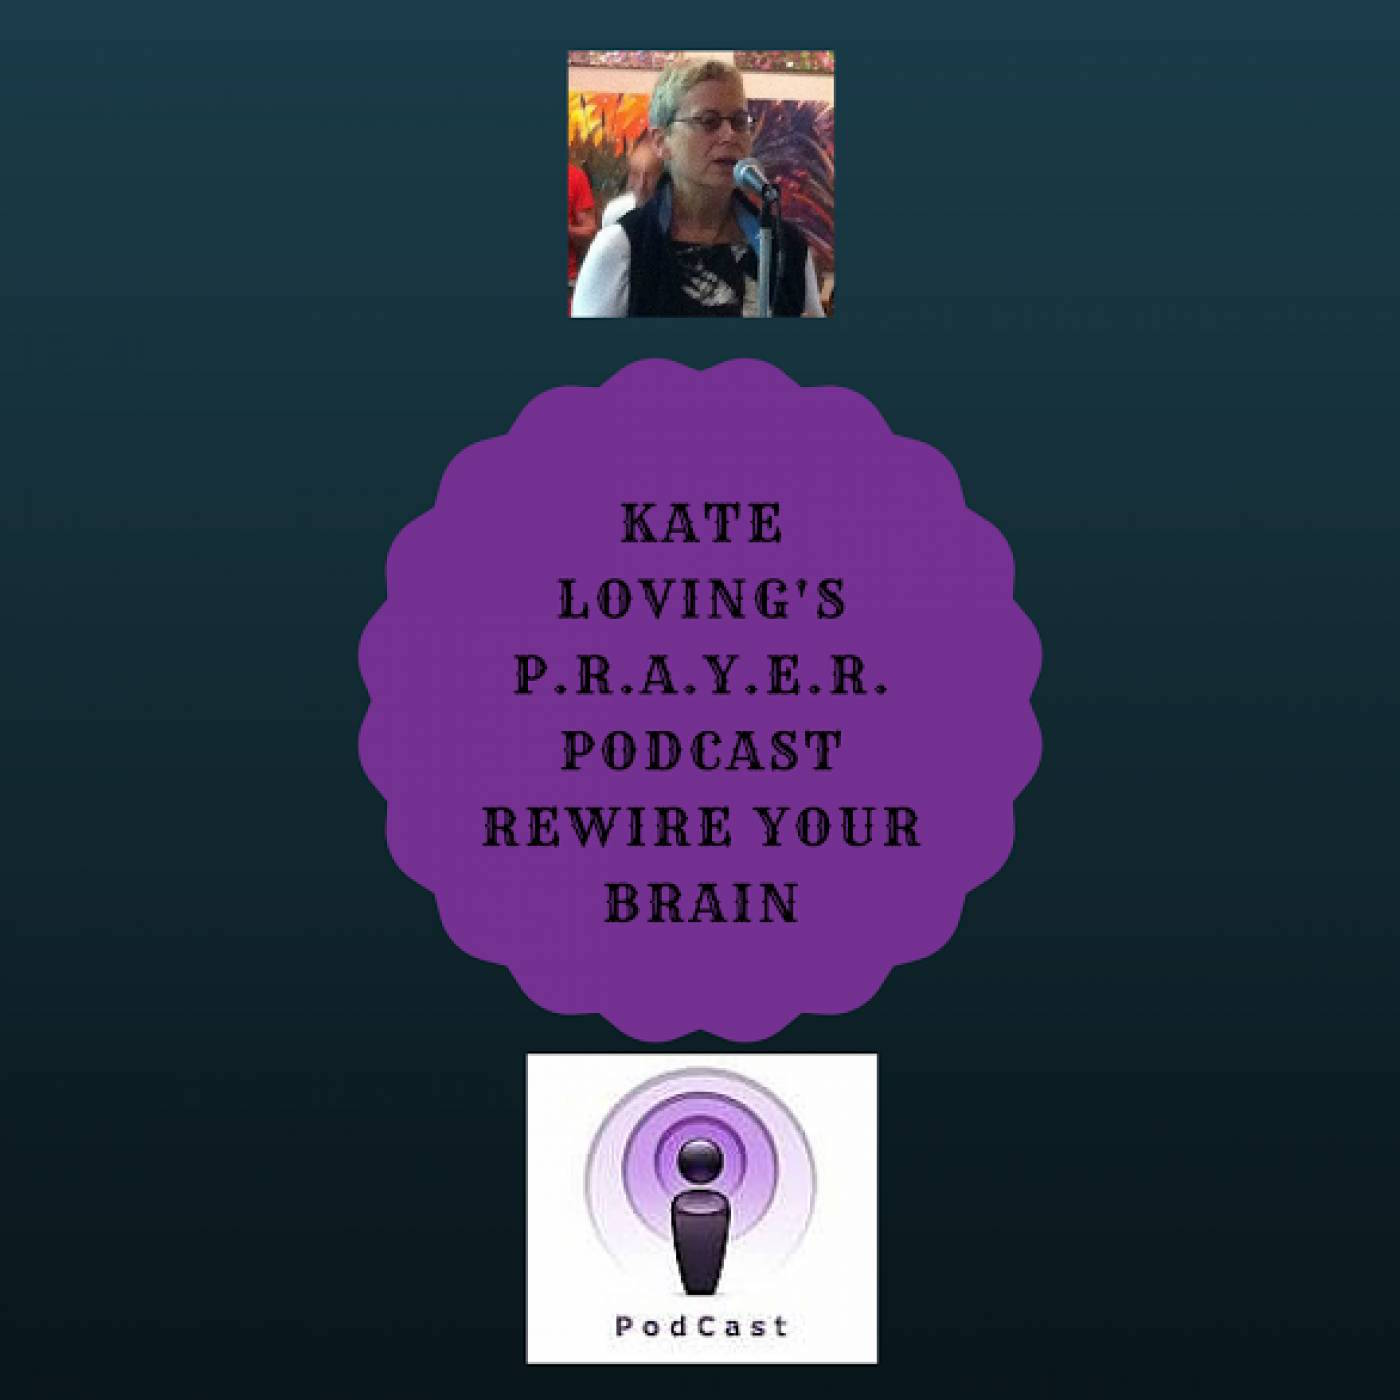 Kate Loving's P. R. A. Y. E. R Podcast